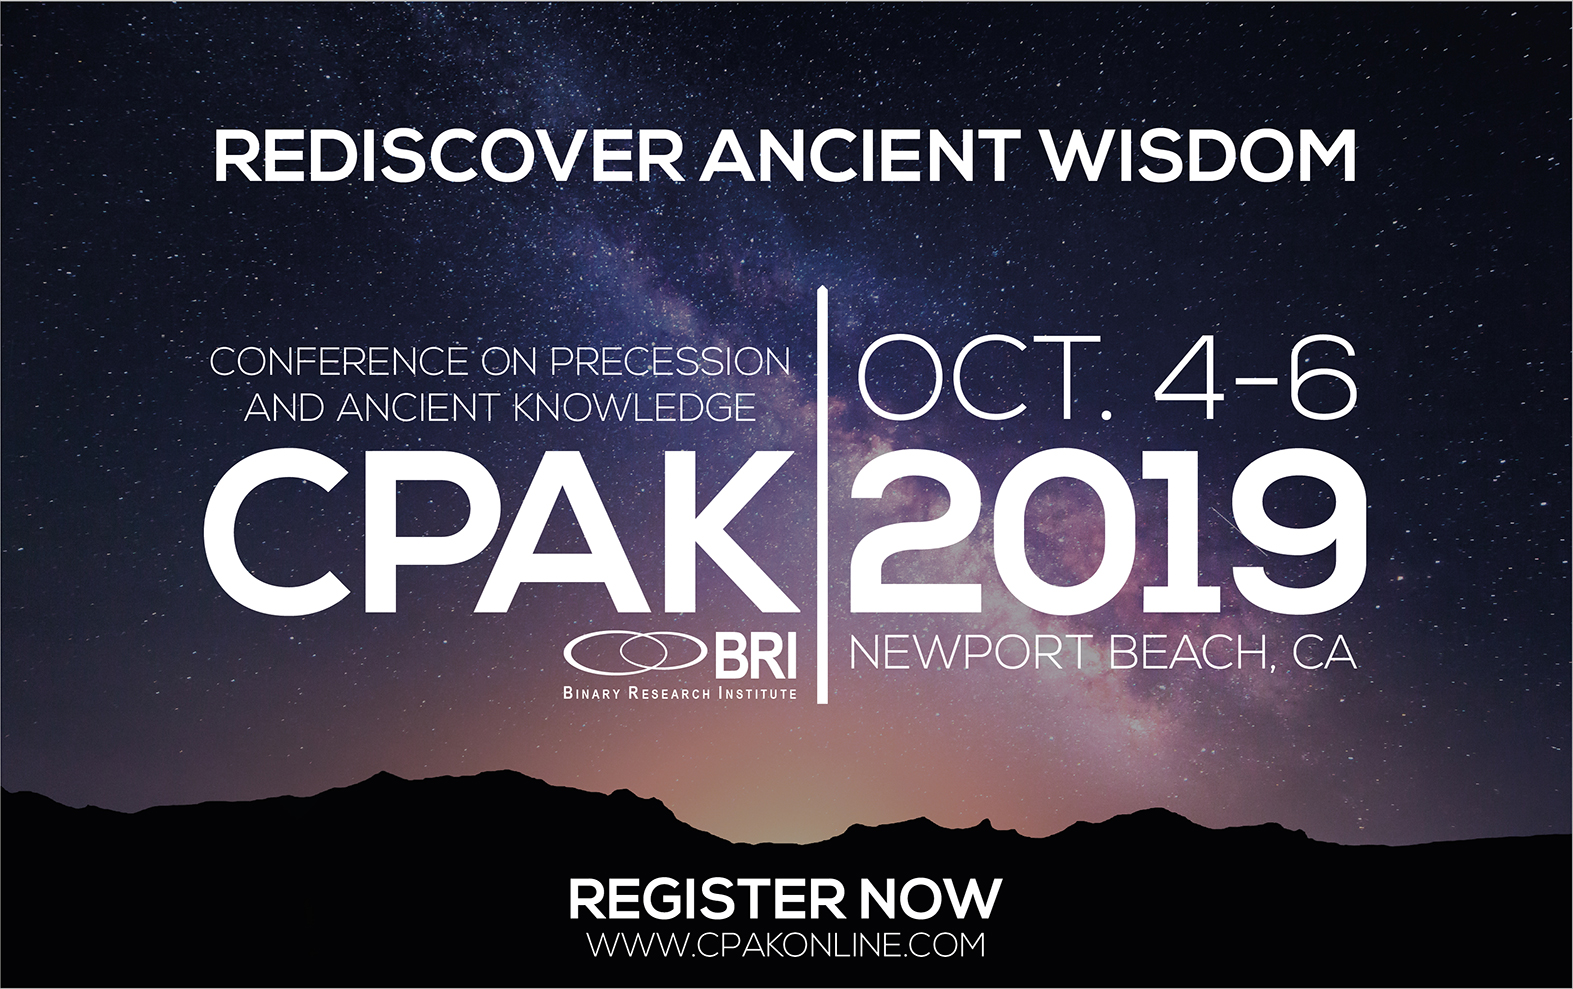 11th Conference on Precession and Ancient Knowledge